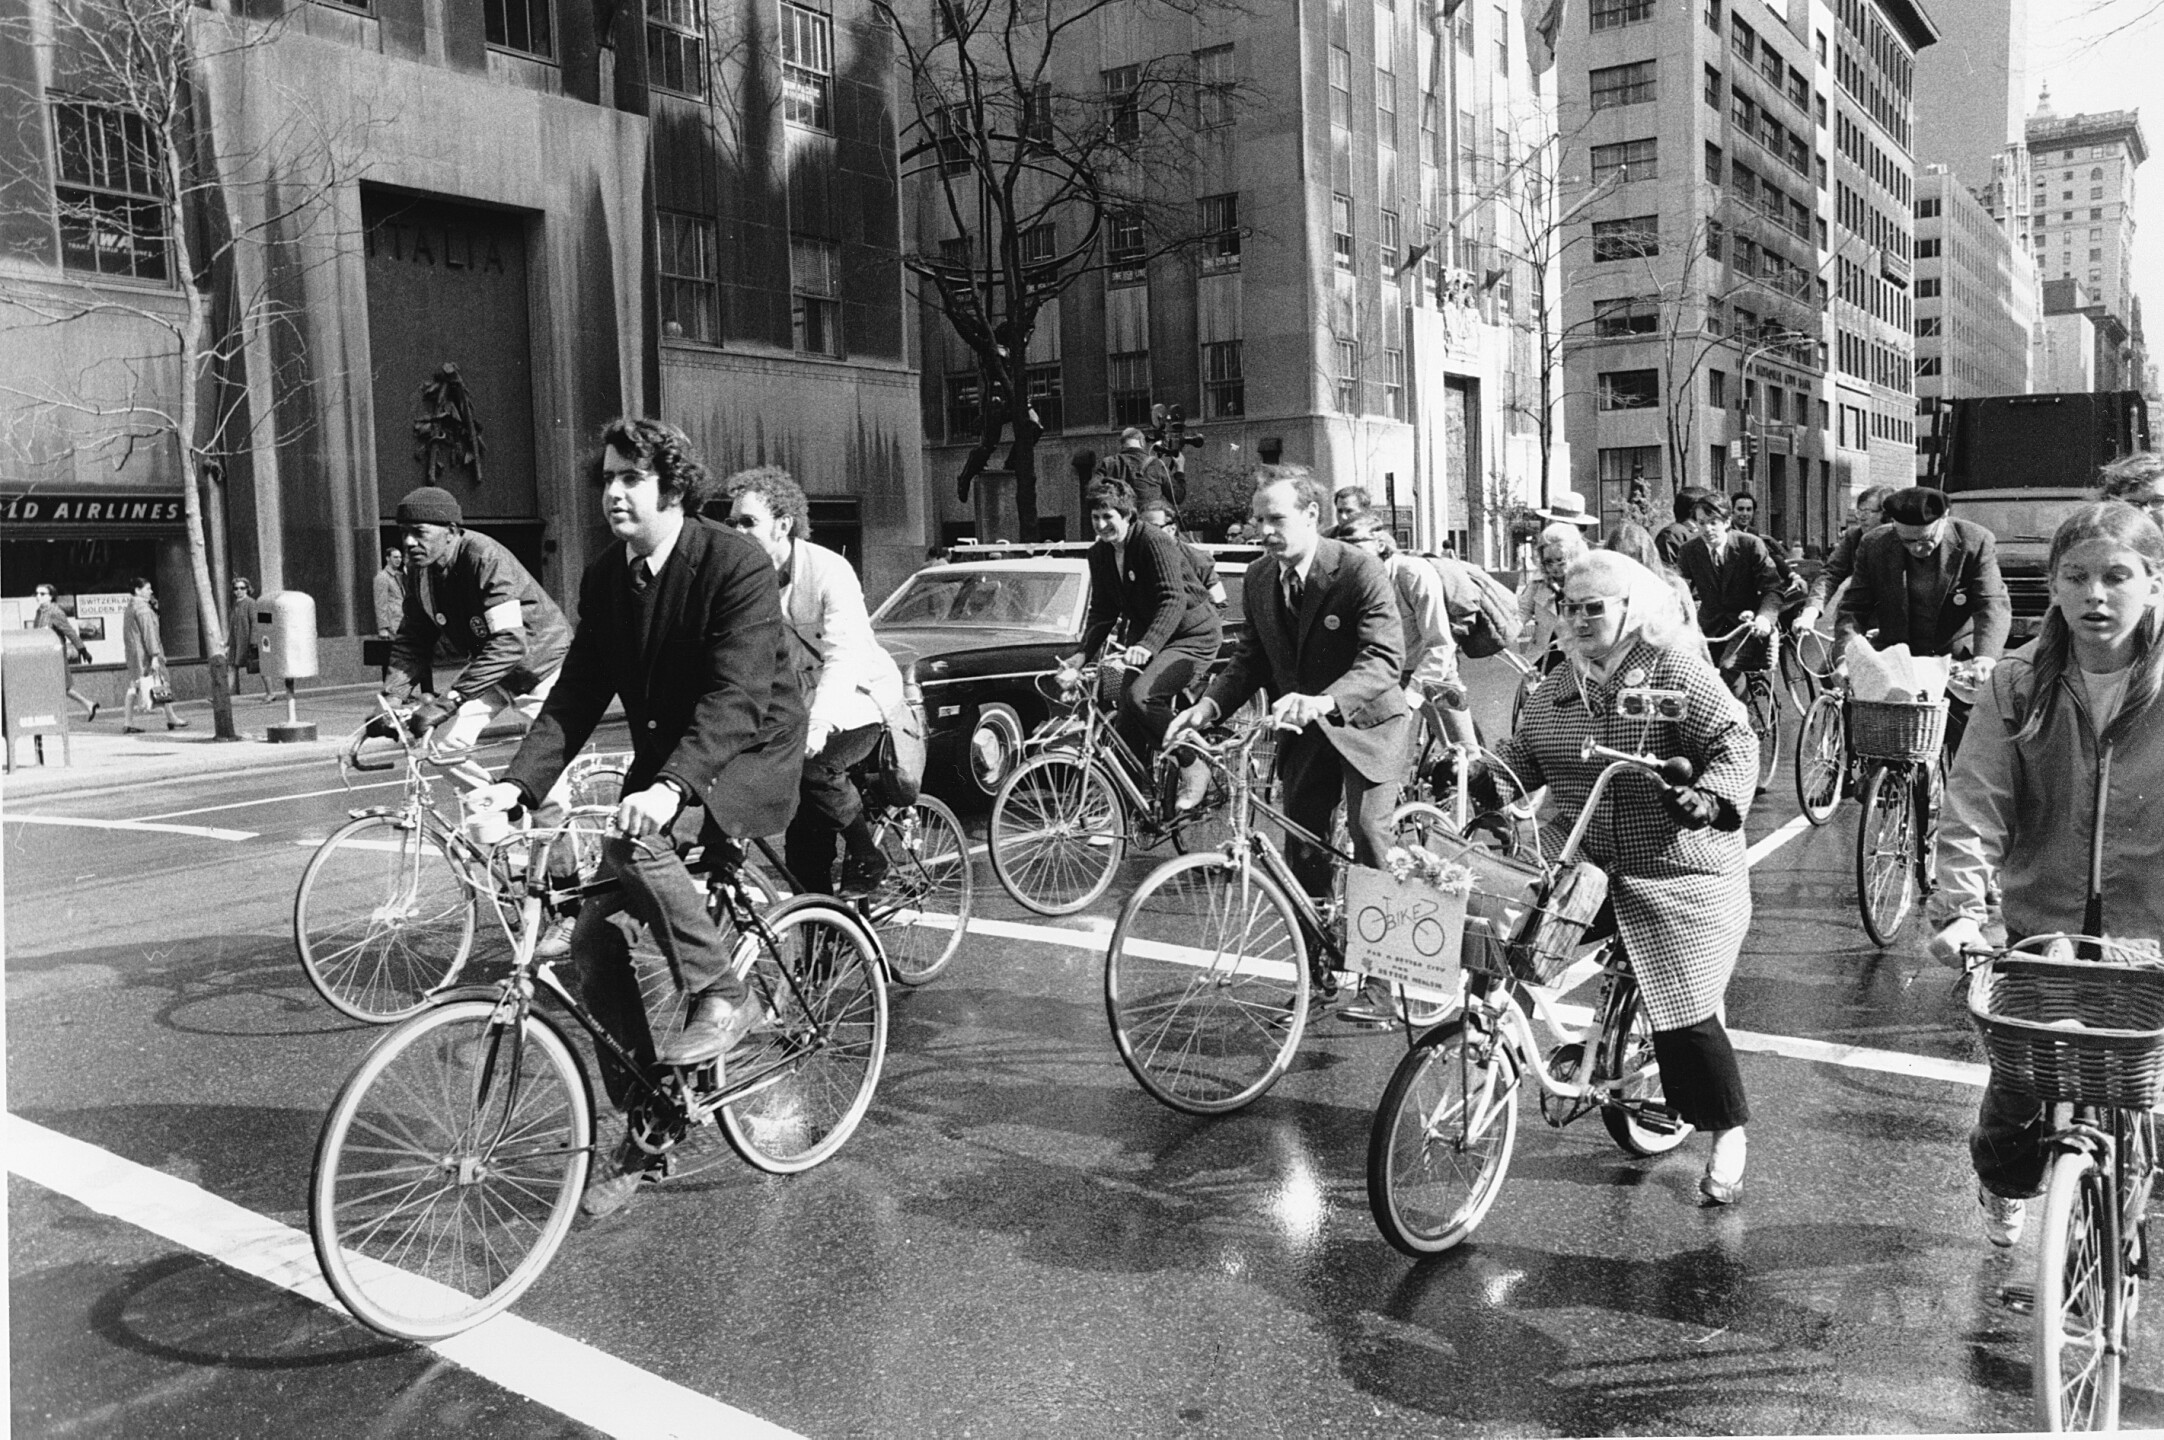 EARTH DAY BICYCLISTS